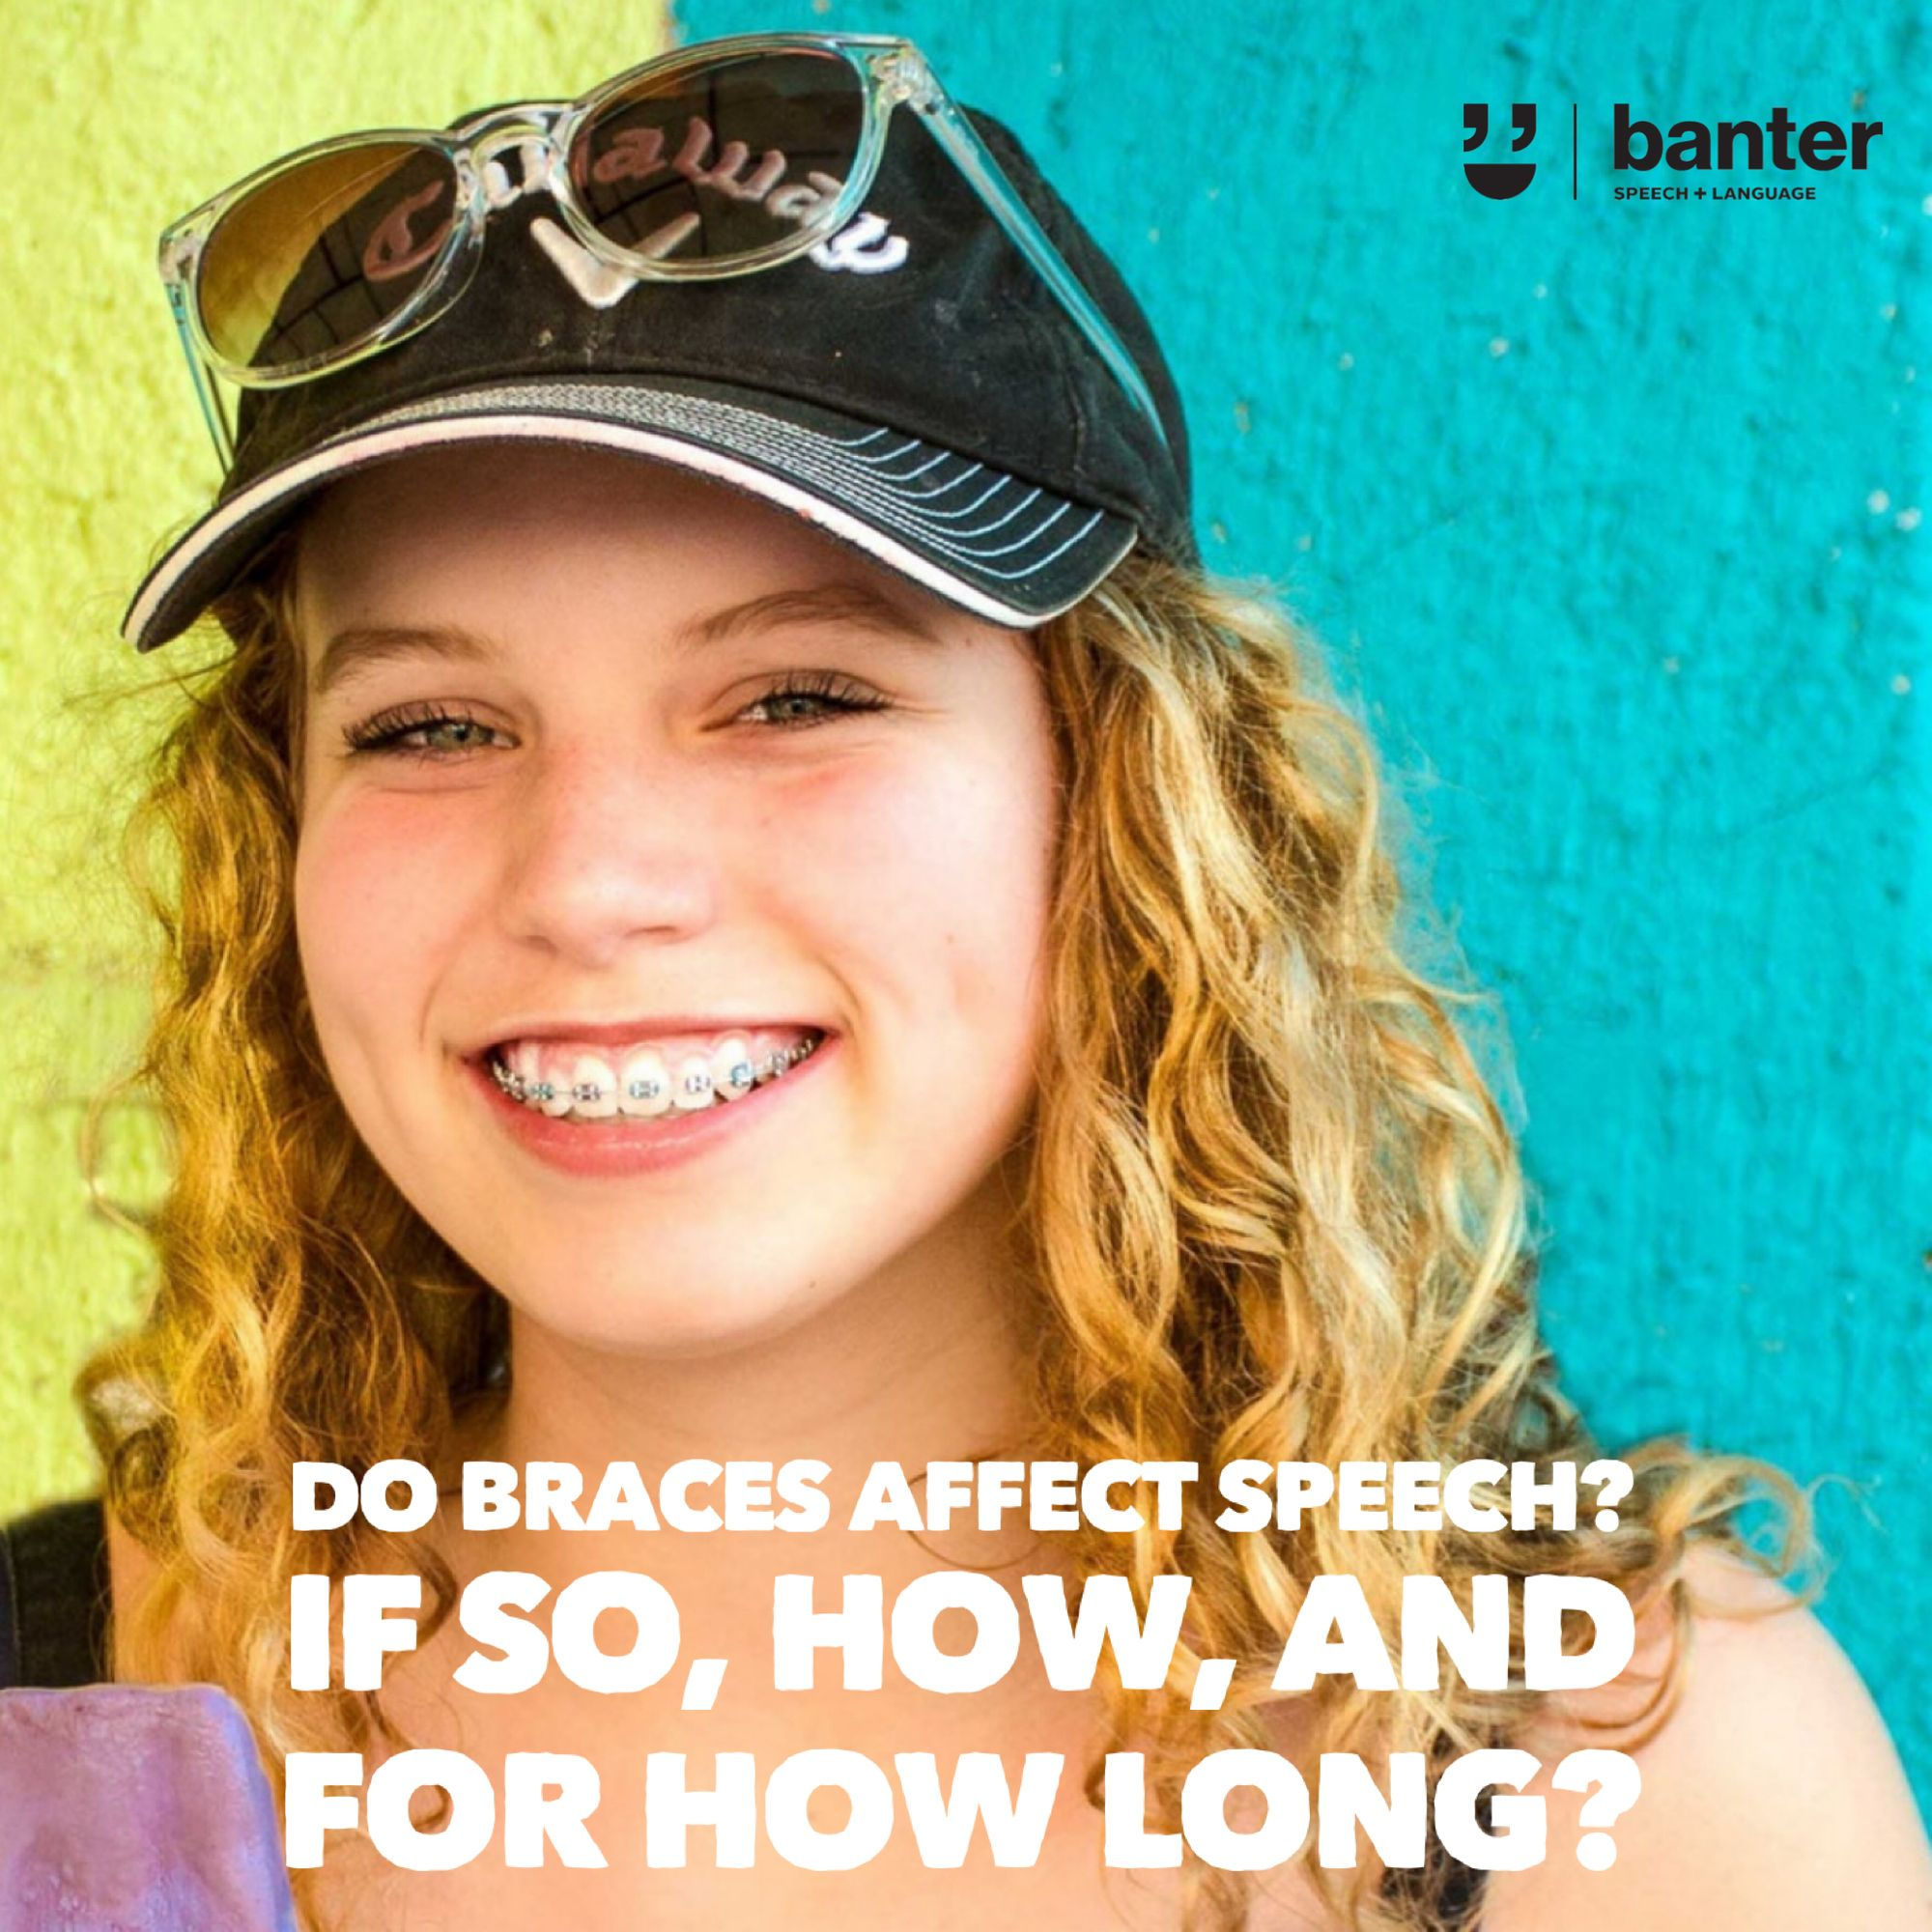 Do Braces Affect Speech? If So, How, And For How Long